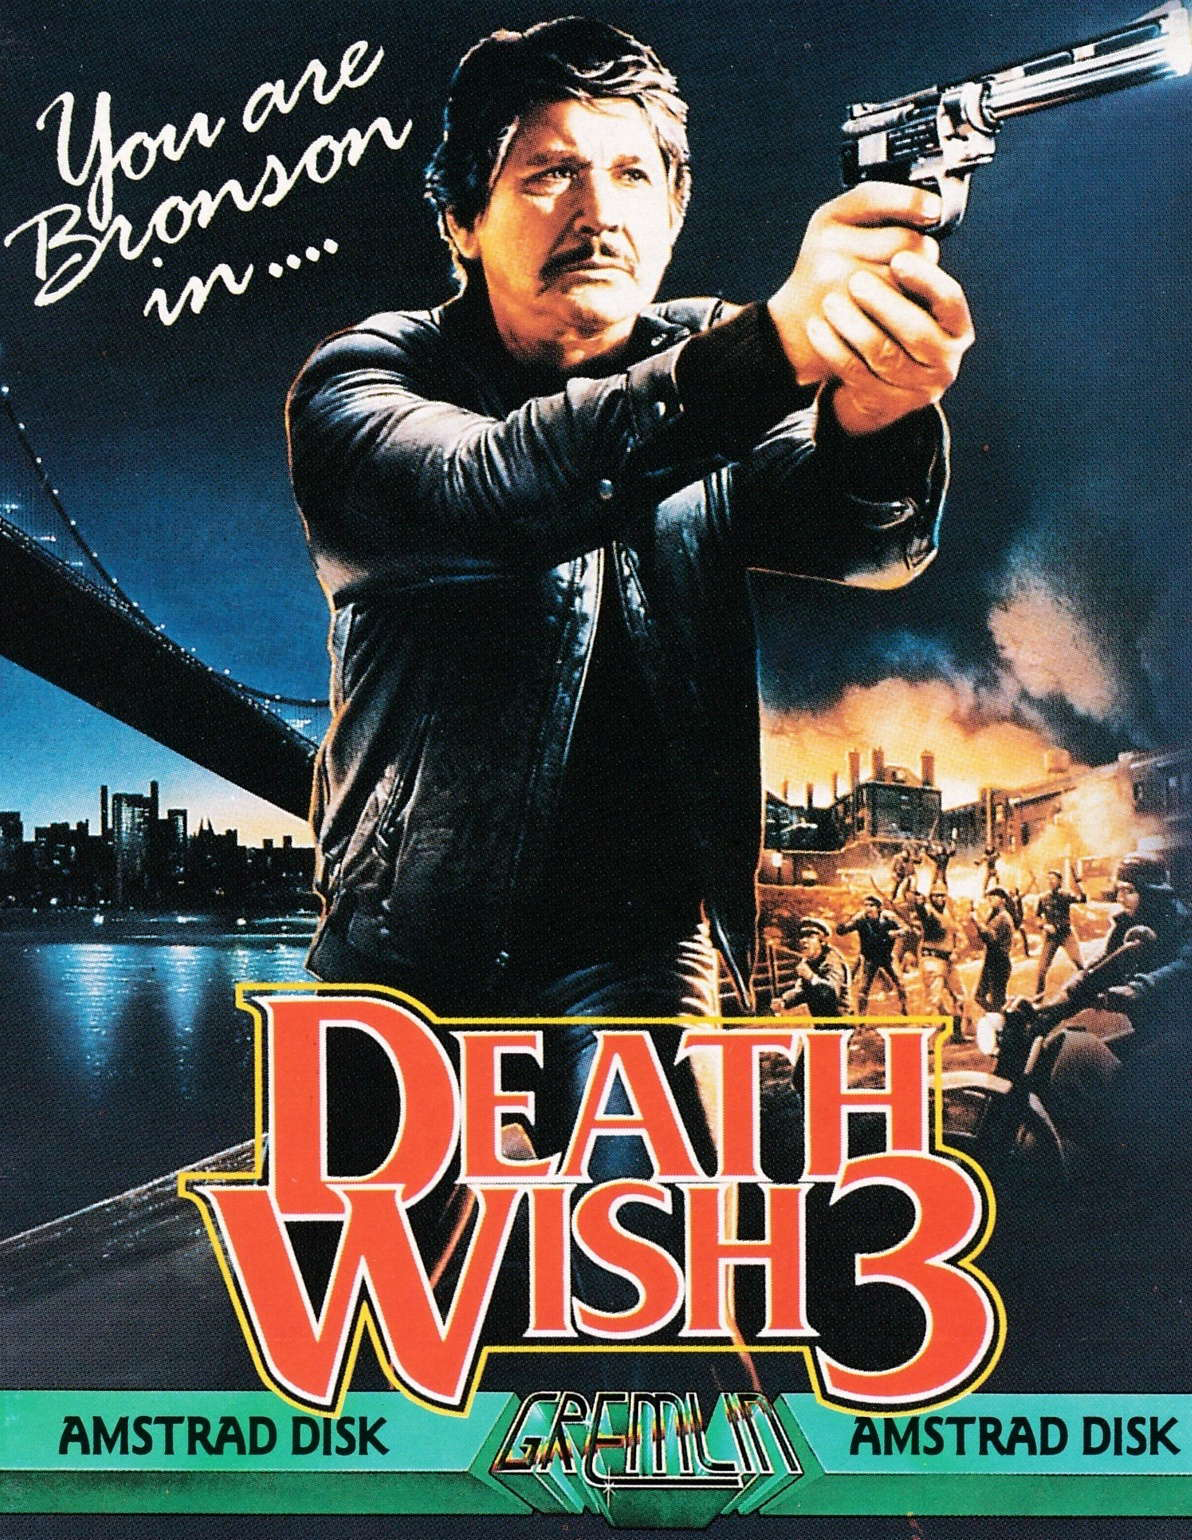 cover of the Amstrad CPC game Death Wish 3  by GameBase CPC